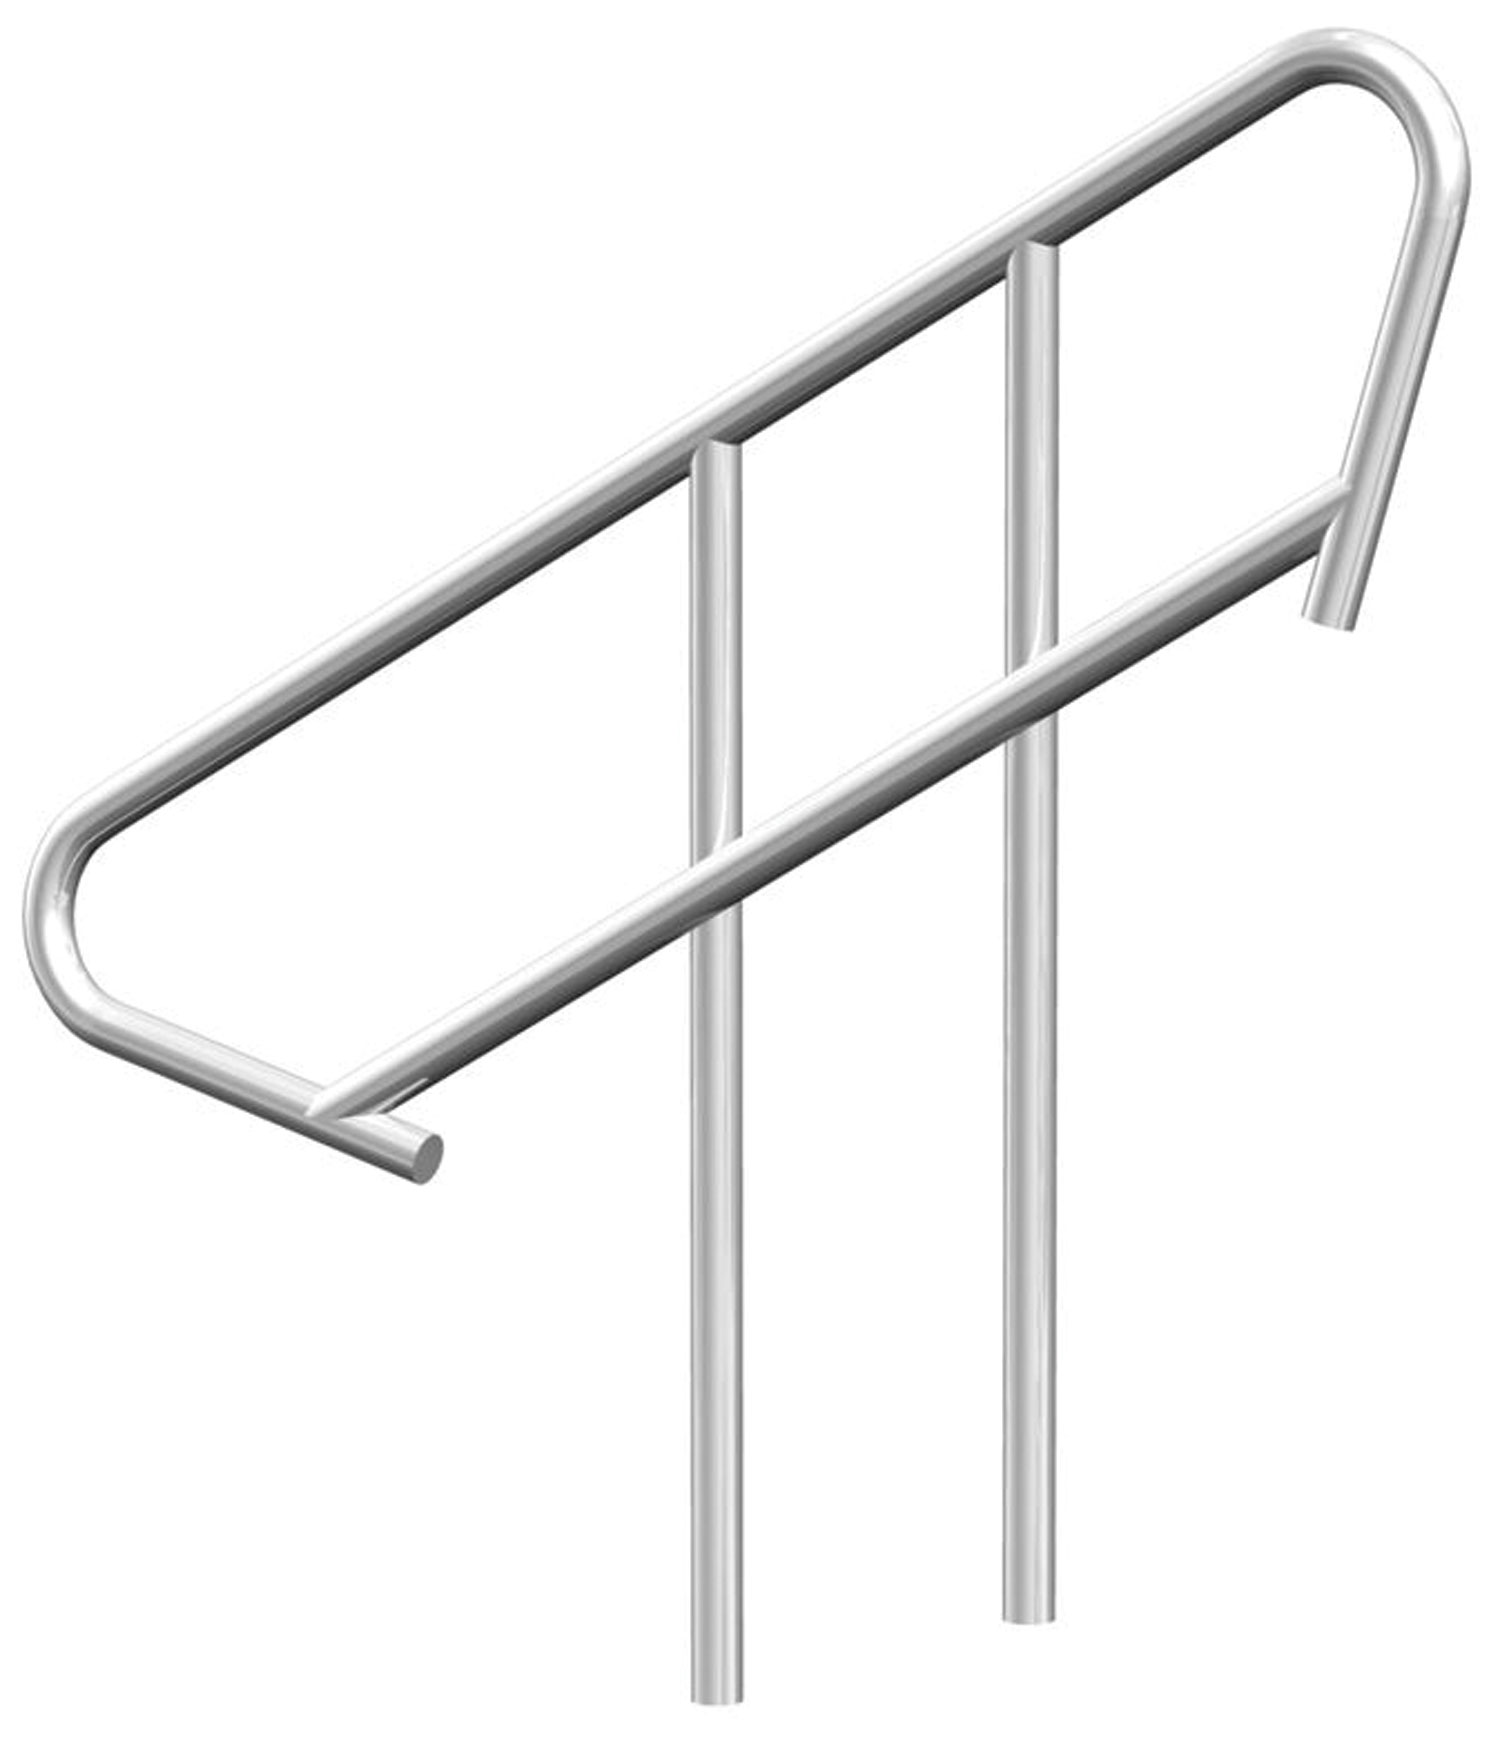 Handrail for Modular Stairs